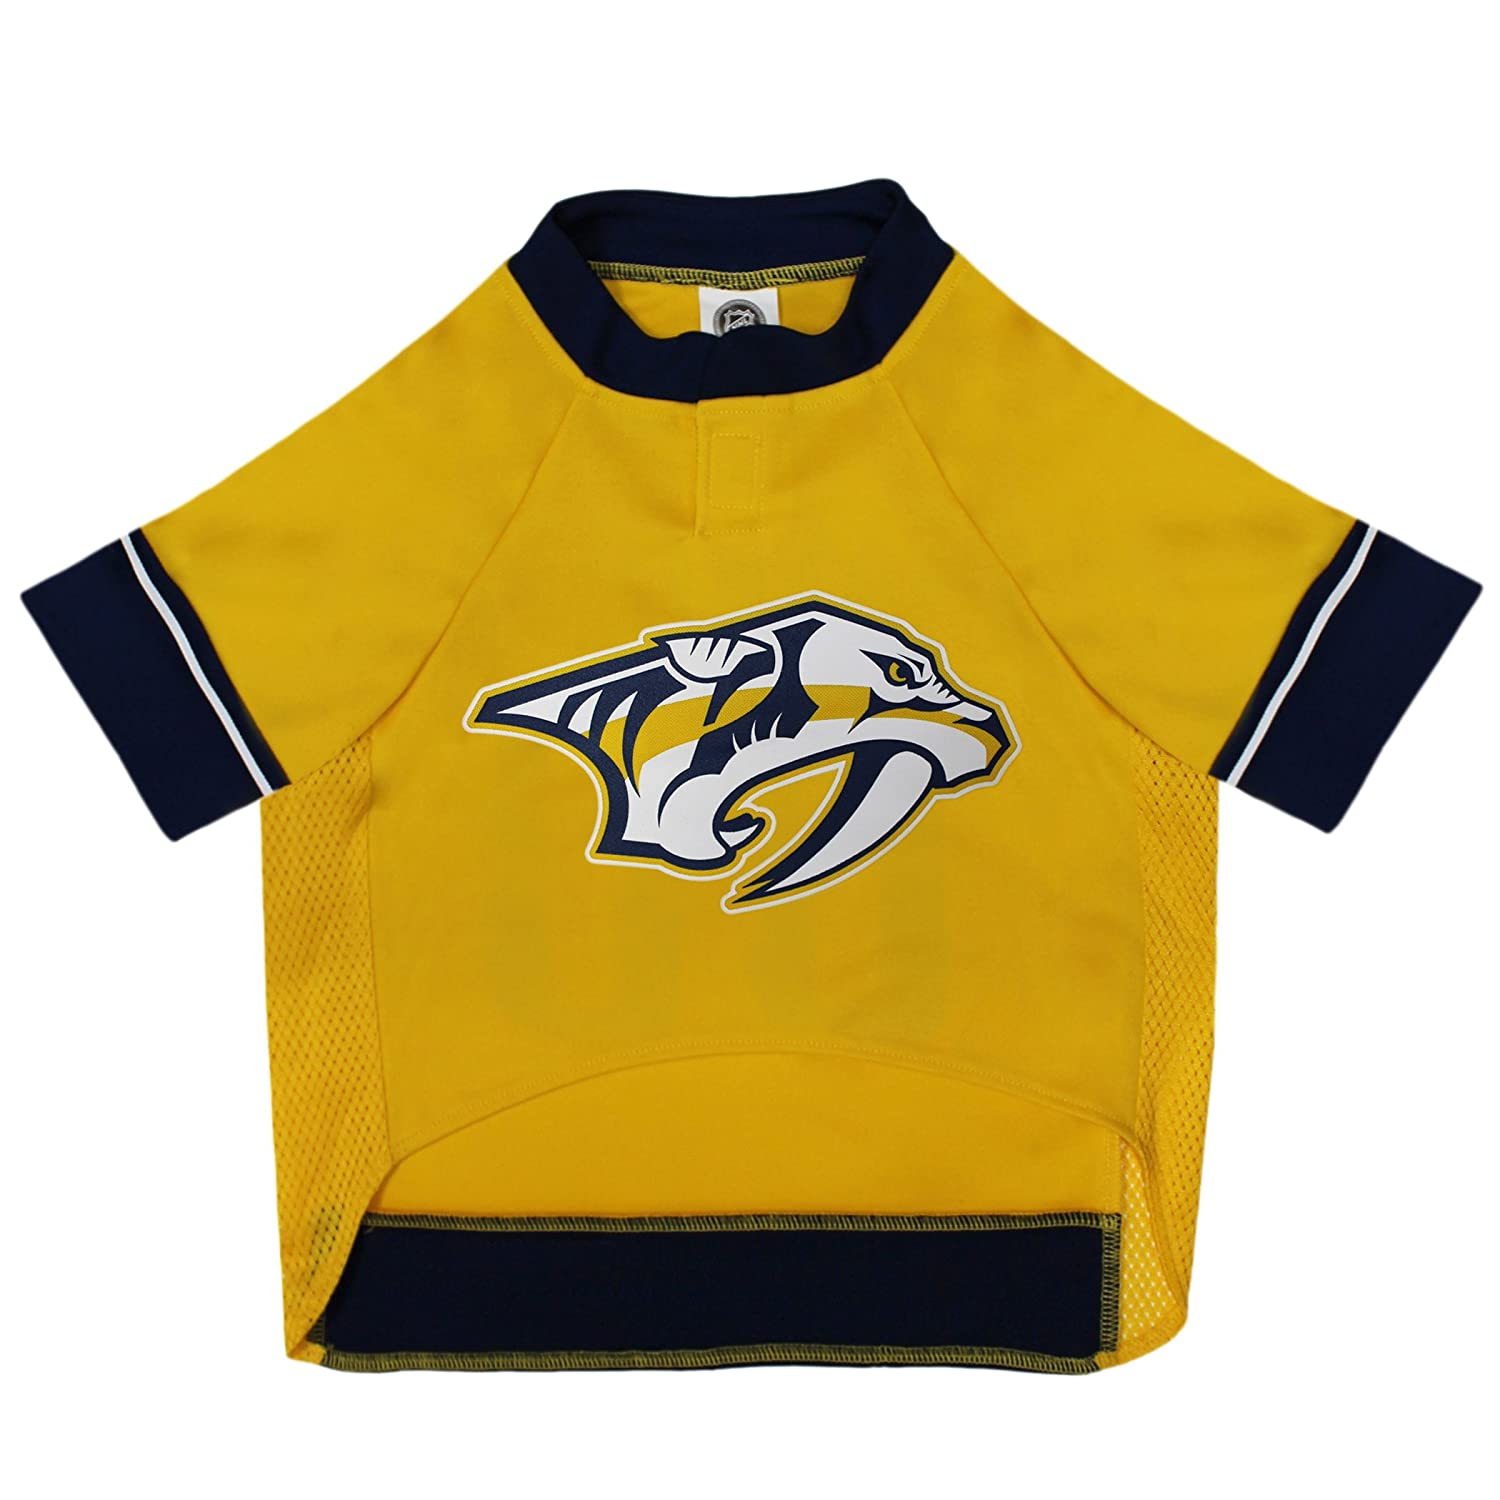 meet 9e5ca 66ff0 NHL Nashville Predators Jersey for Dogs & Cats, X-Small. - Let Your Pet be  a Real NHL Fan!